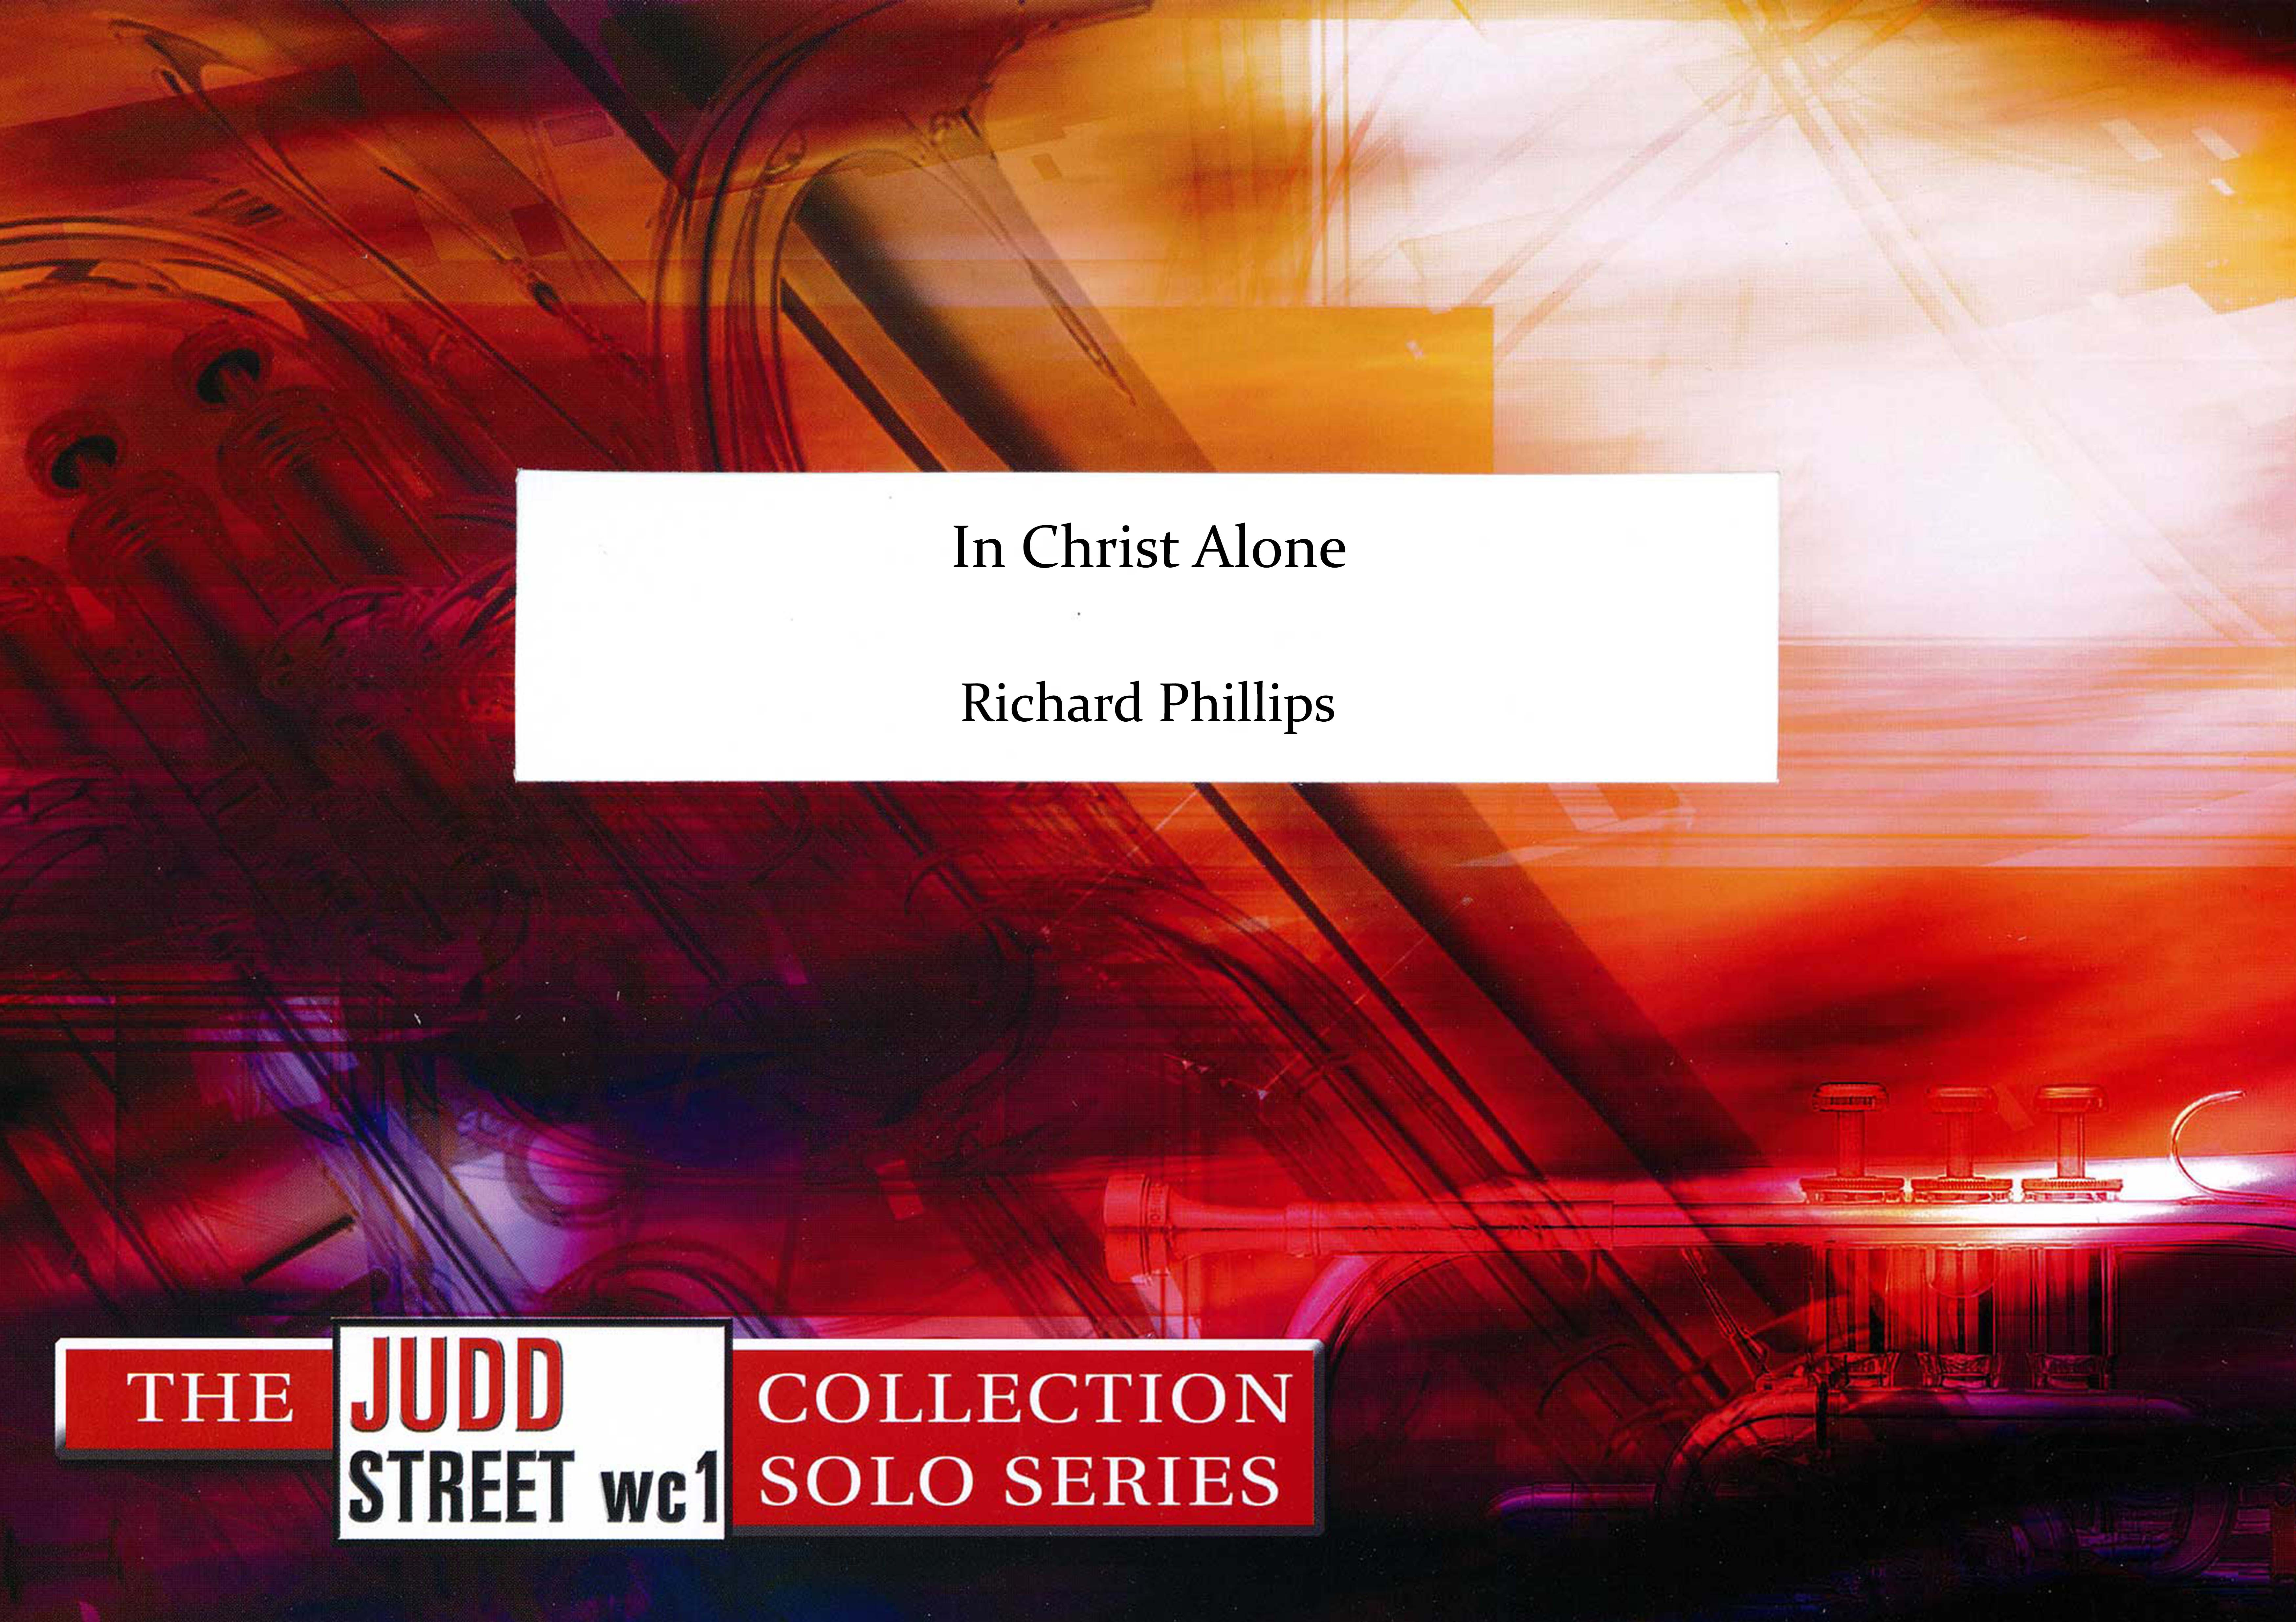 In Christ Alone (Euphonium Solo with Brass Band - Score and Parts)